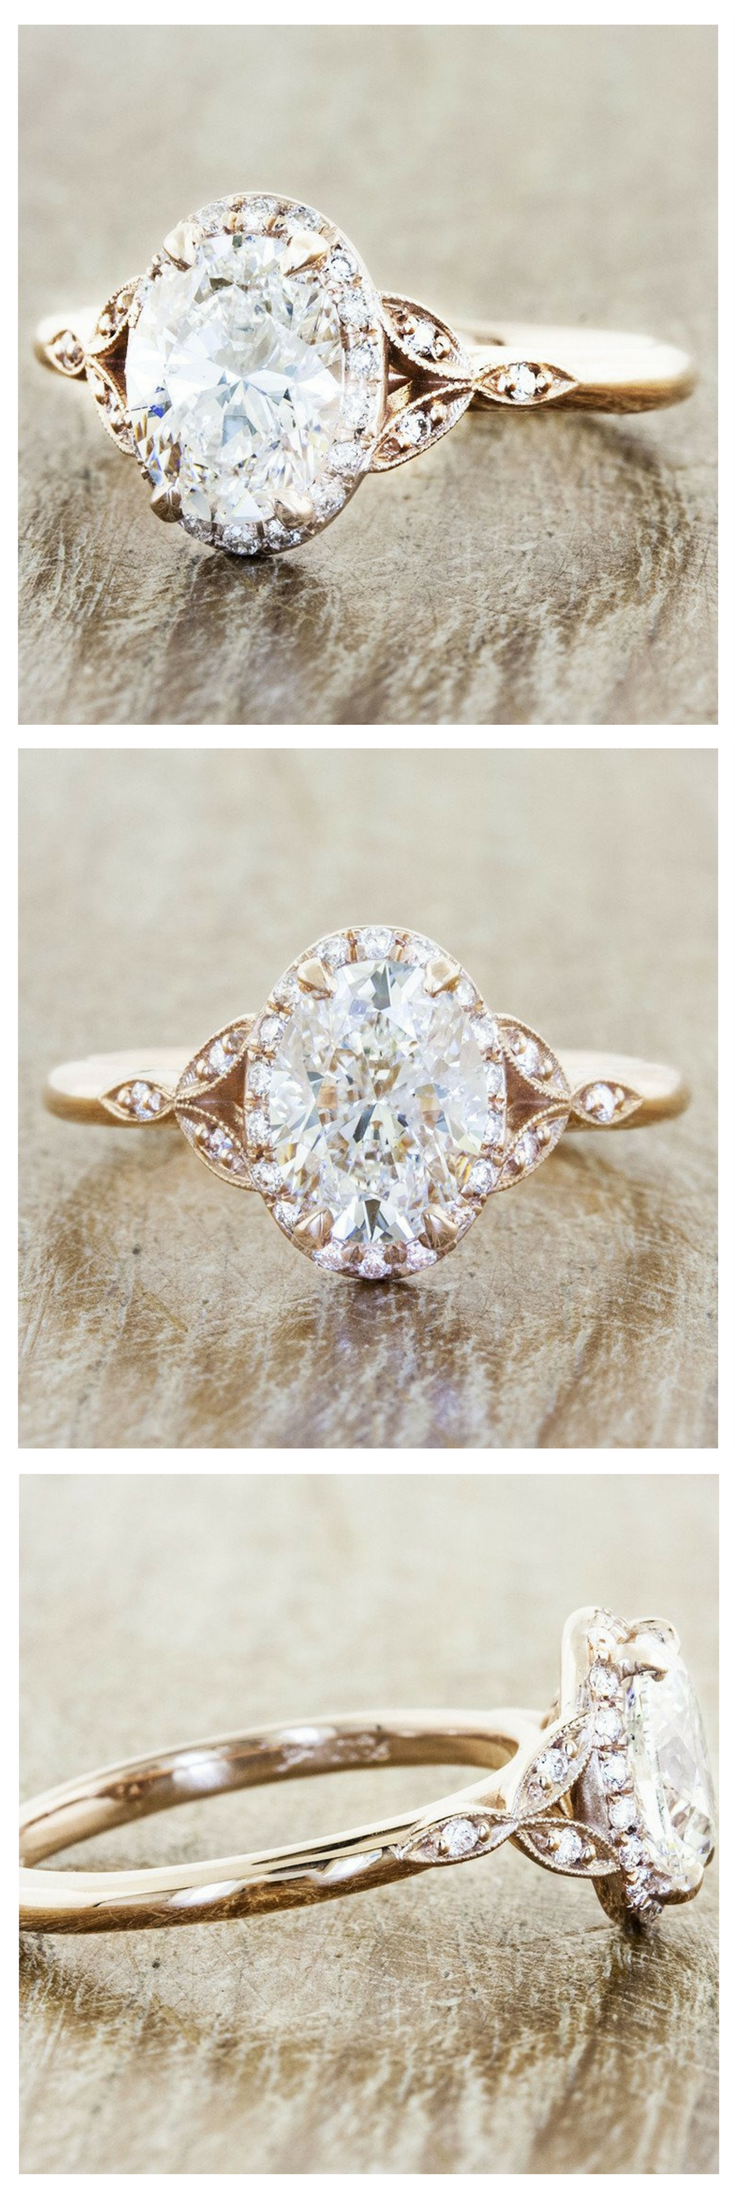 The rachael is a custom engagement ring crafted with a brilliant